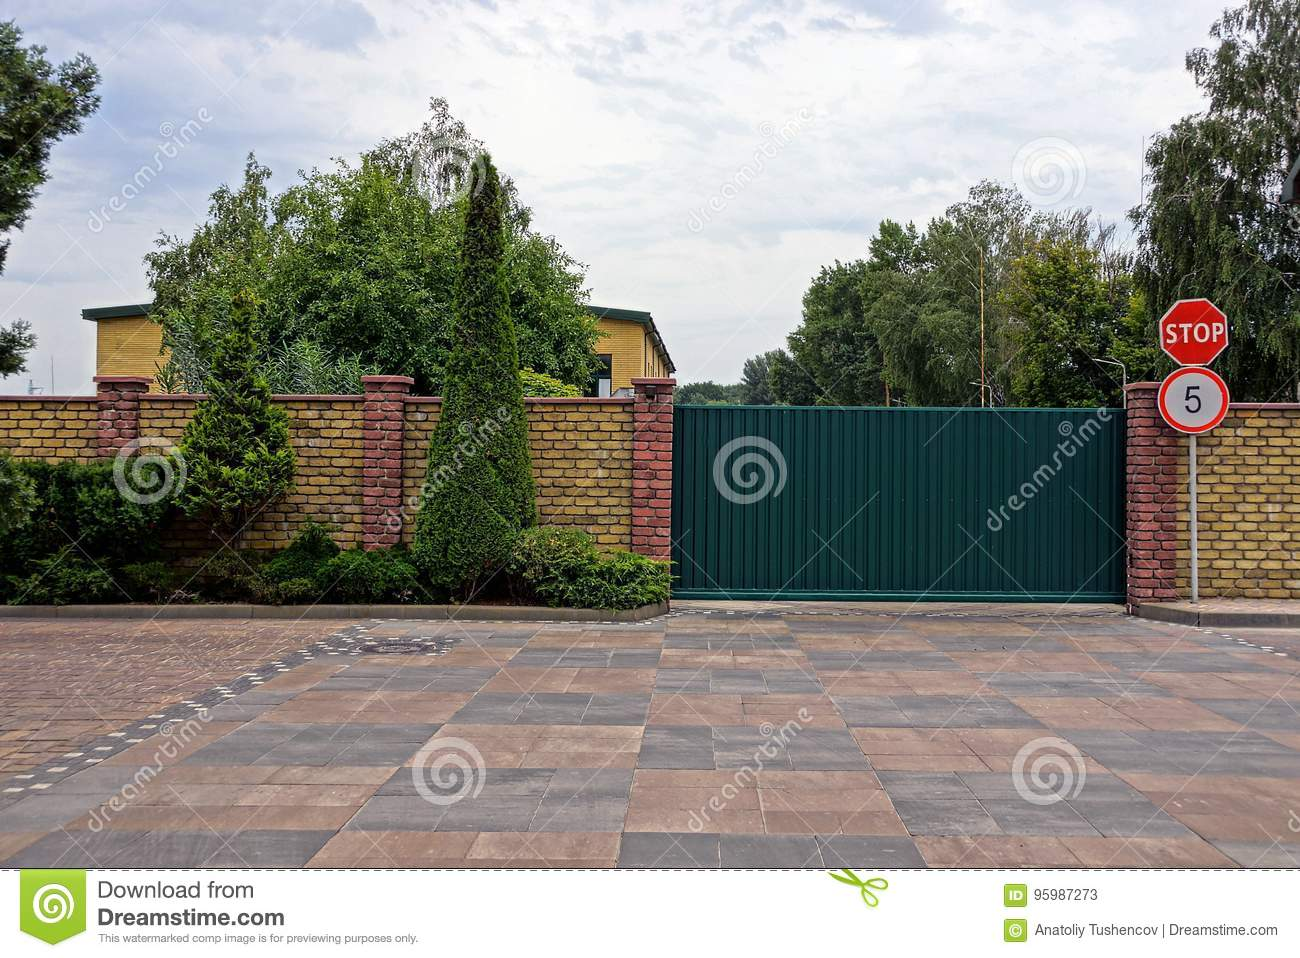 Green Iron Gates And Road Signs Near A Brick Wall With